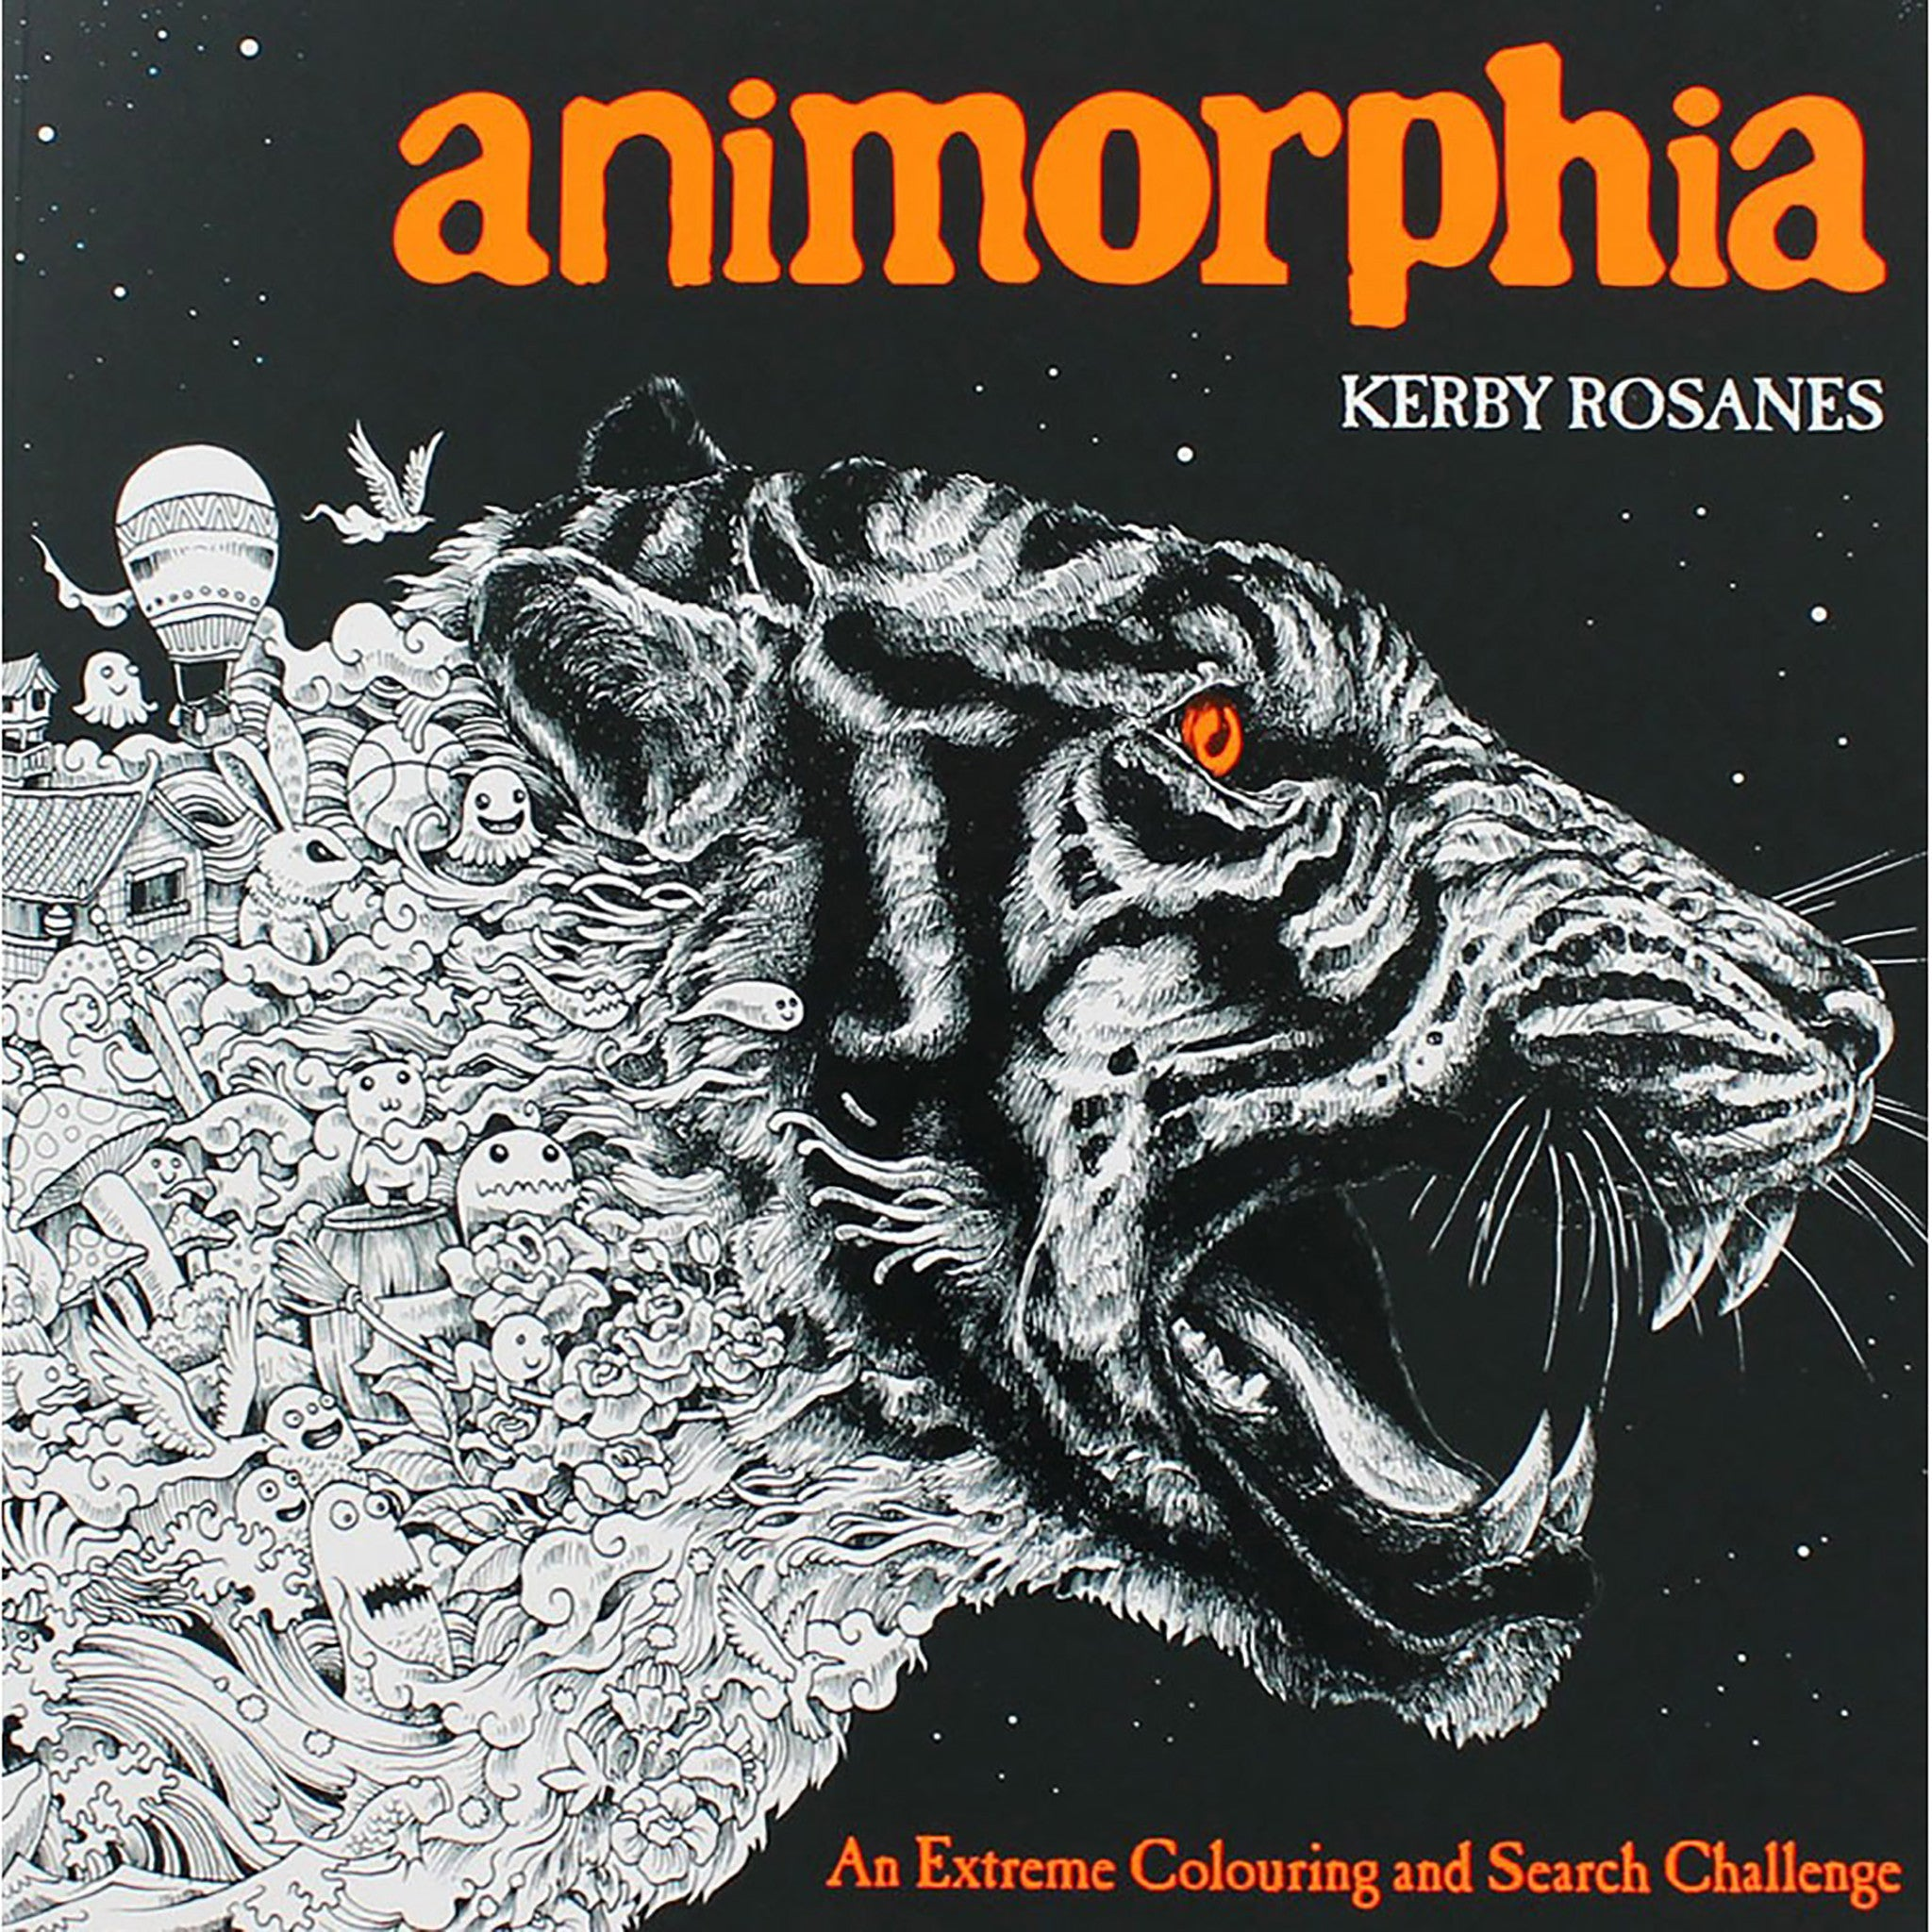 Animorphia an extreme coloring and search challenge by kerby rosanes - Animorphia An Extreme Coloring And Search Challenge